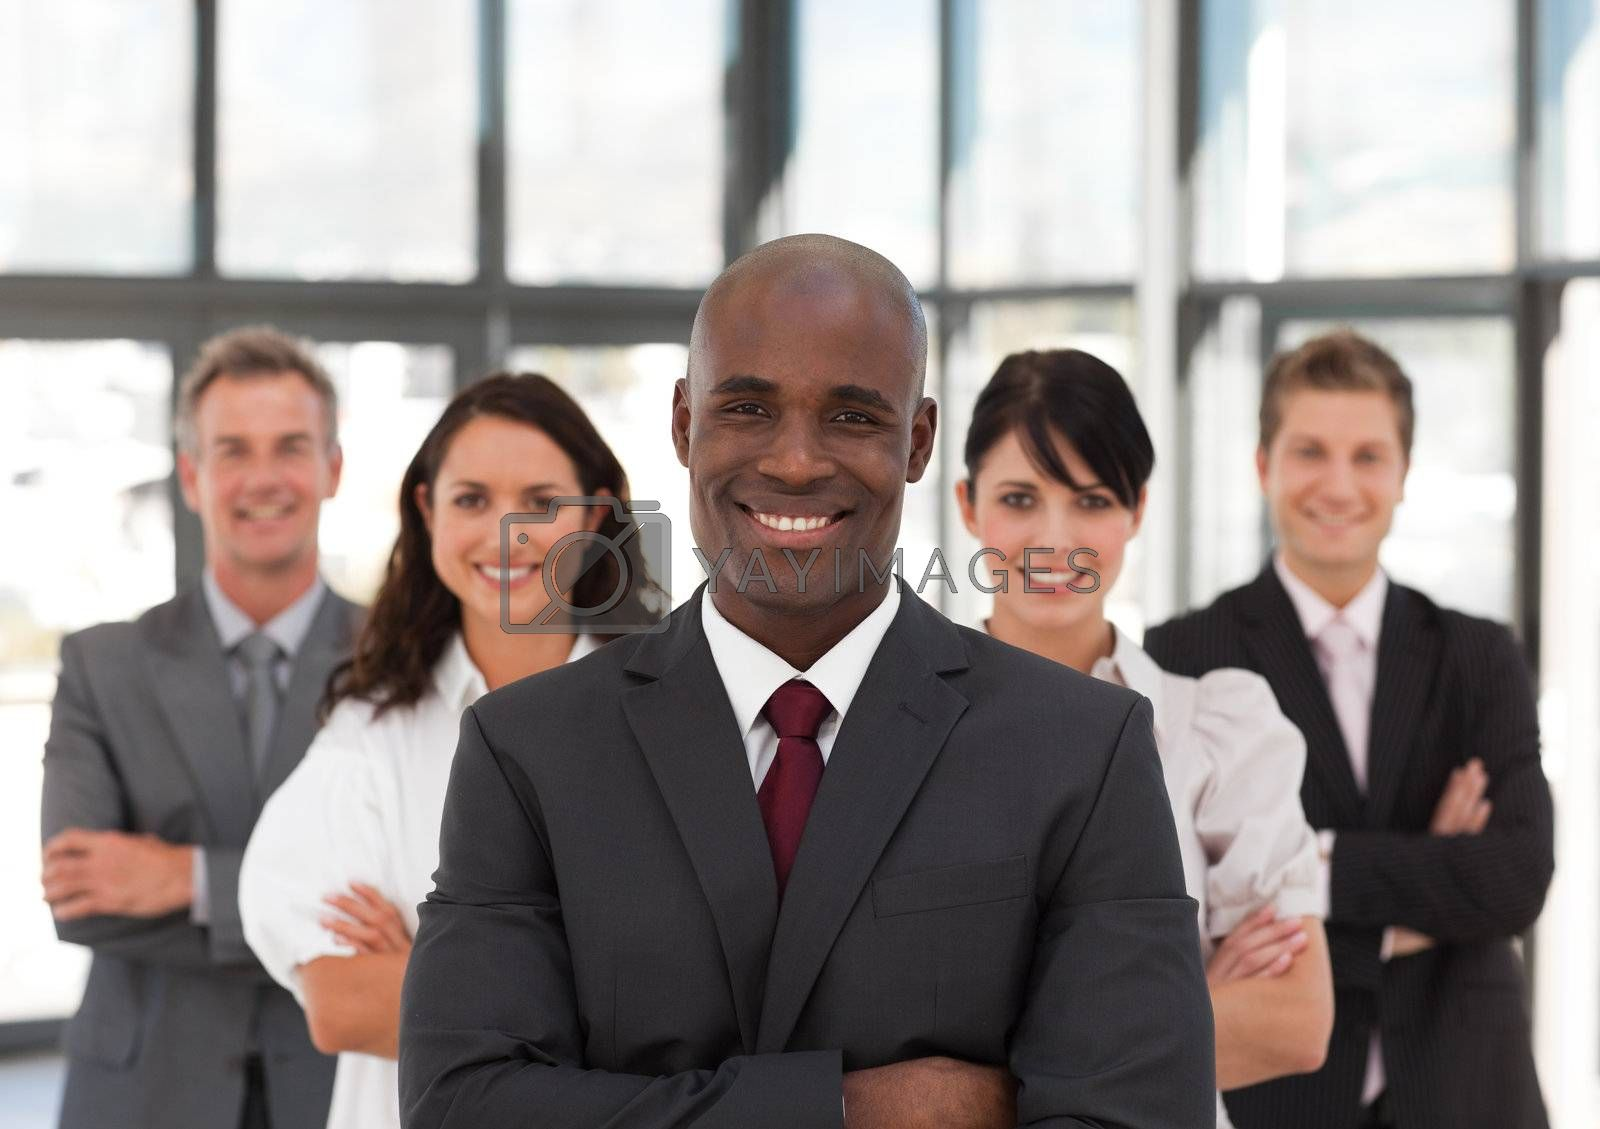 Smiling confident business team looking at the camera in a office